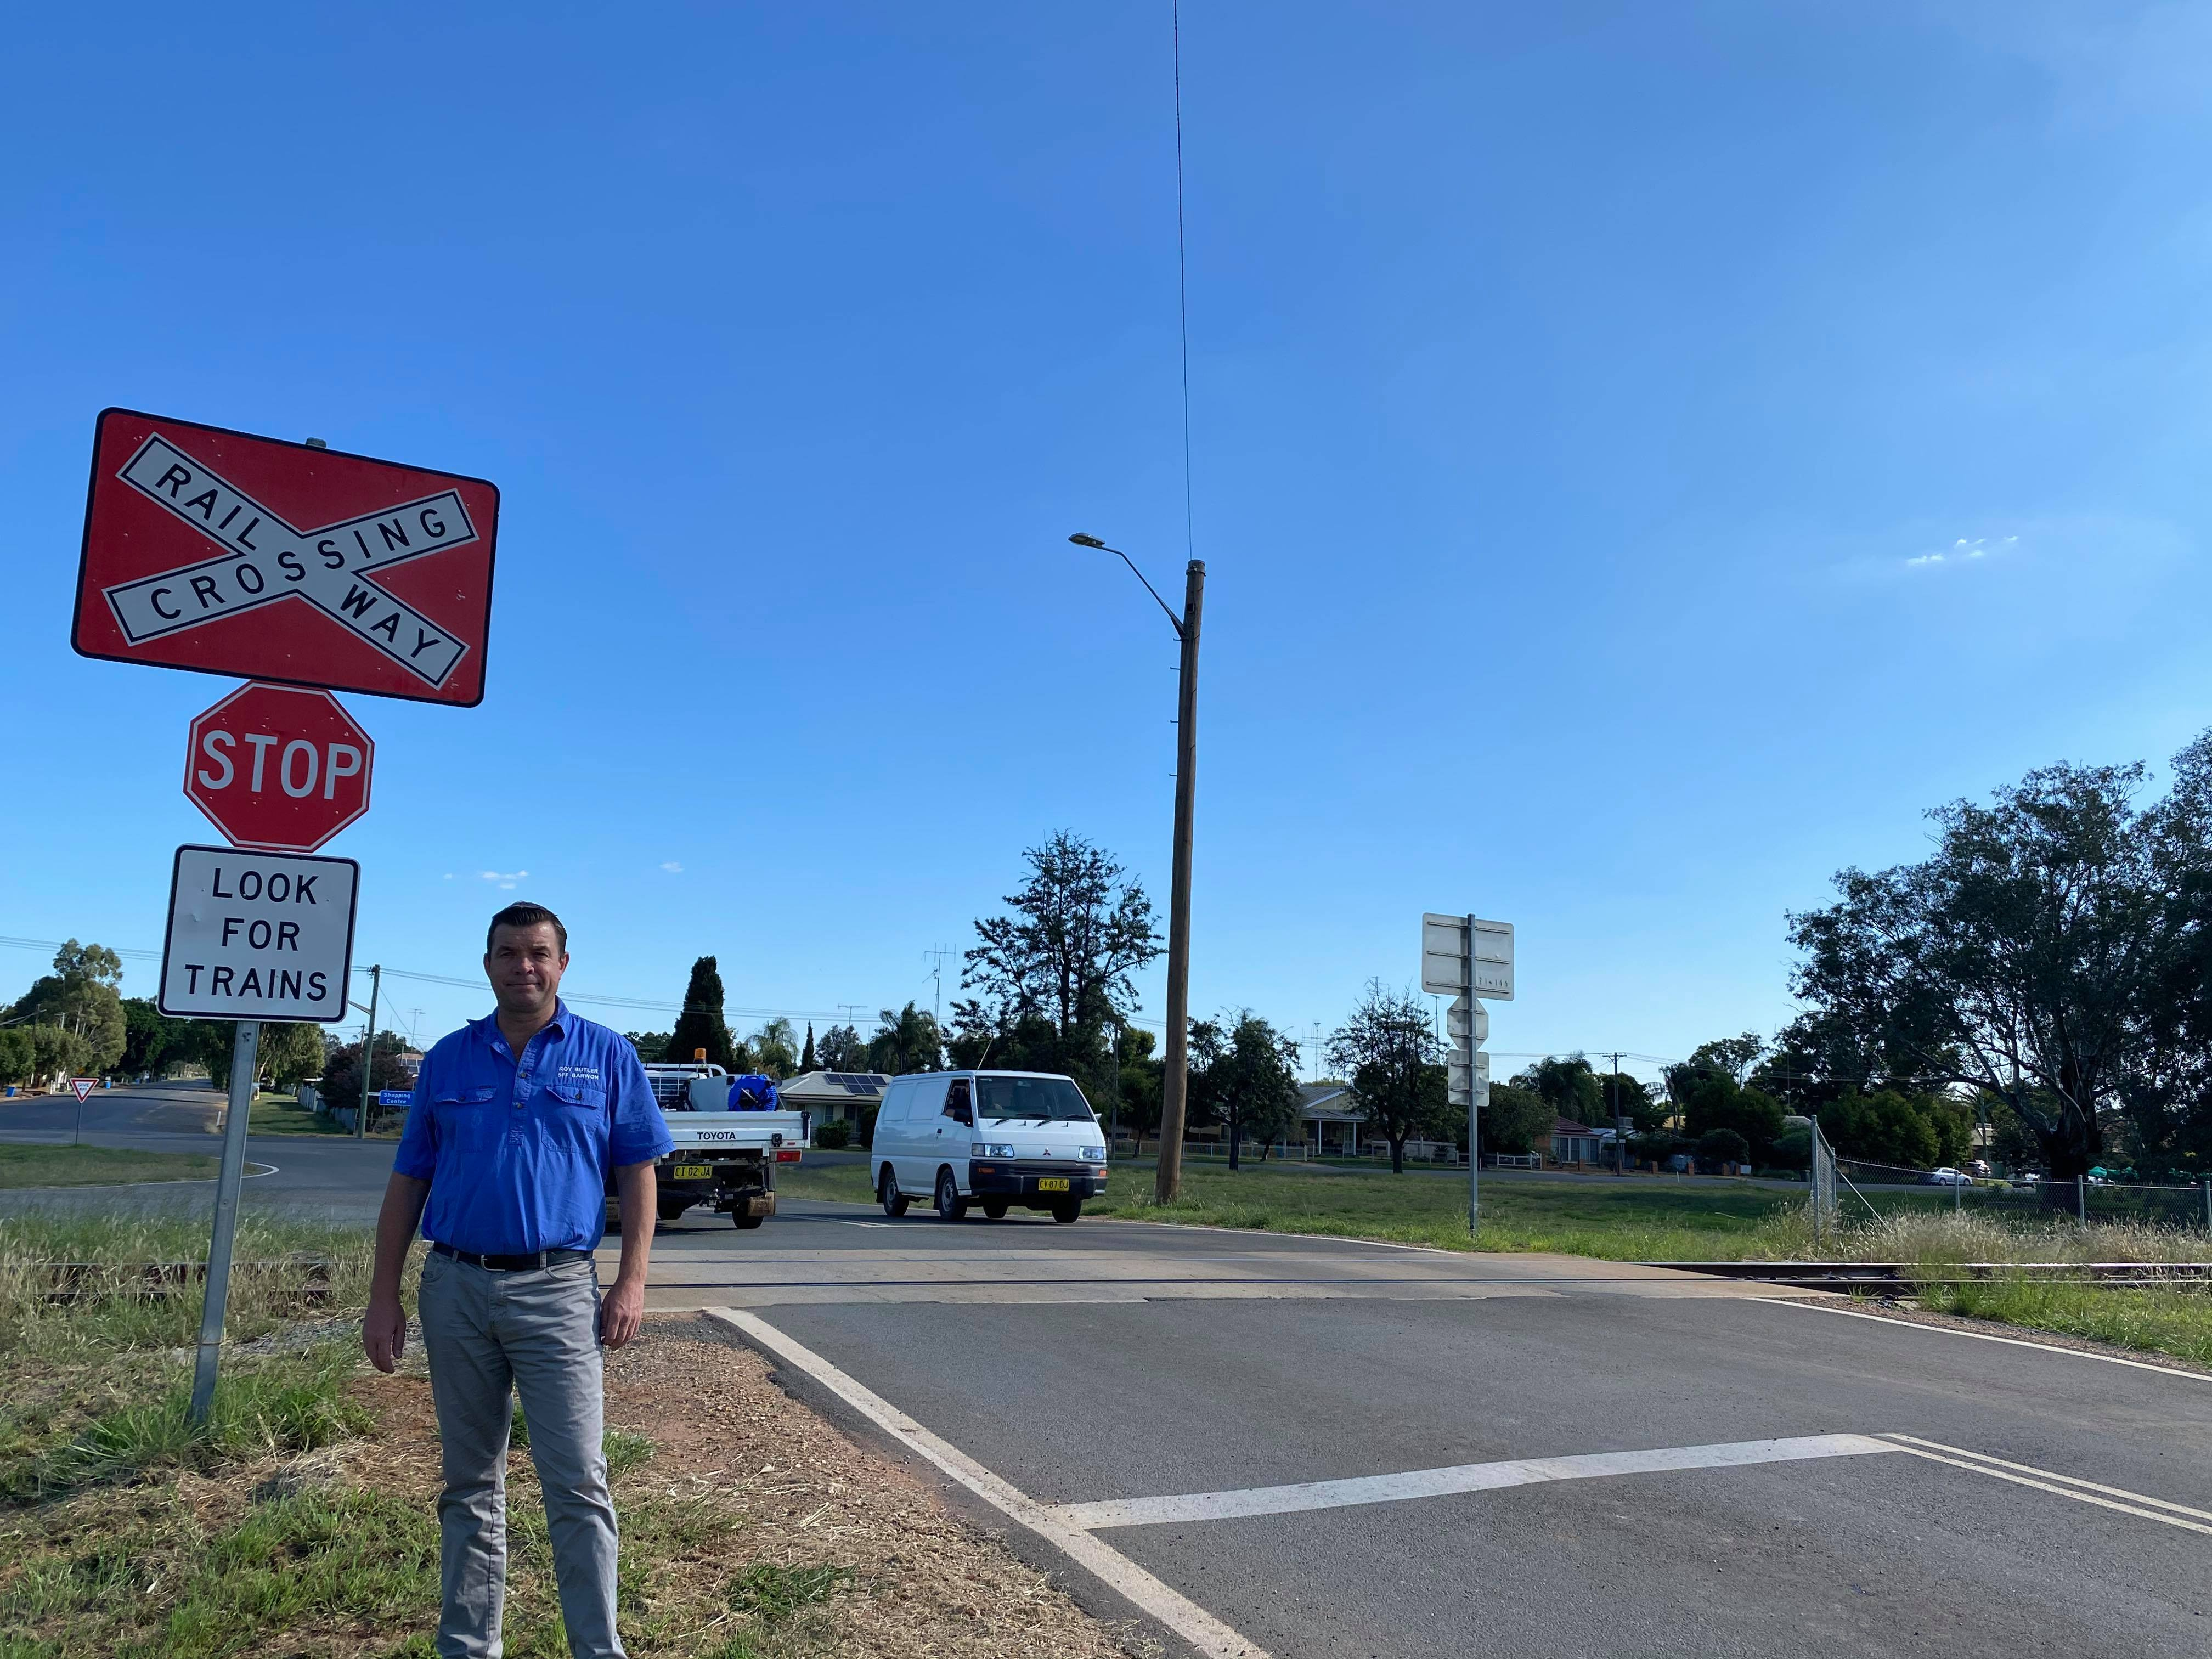 No lights, no boom gates – more must be done to fix unsafe level crossings Image